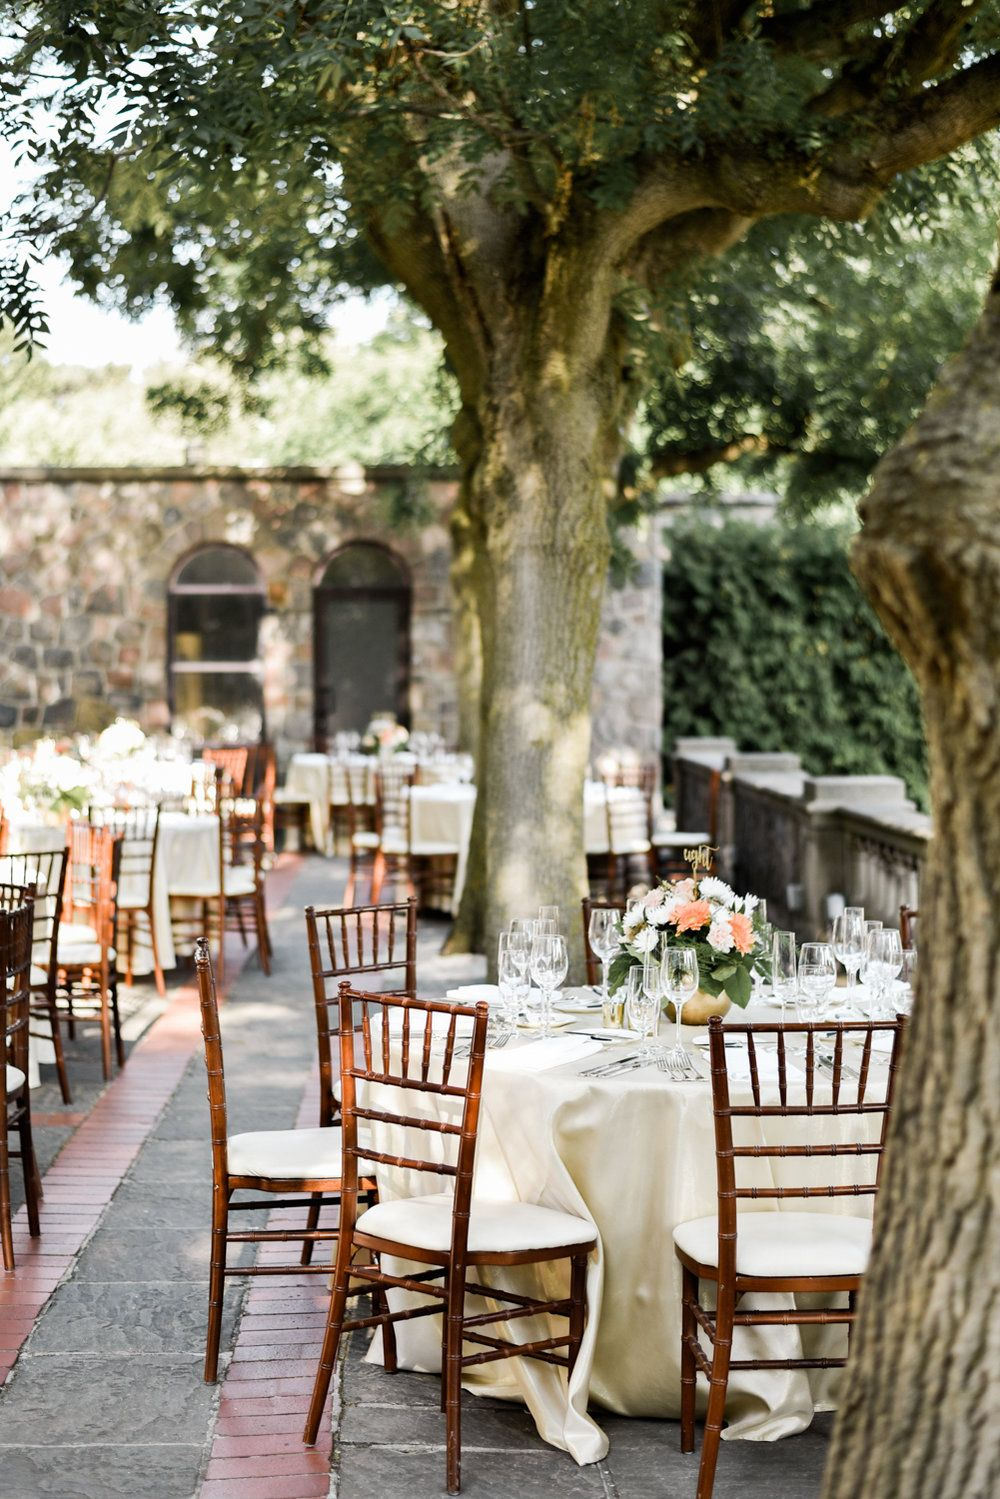 Graydon Hall Wedding Clic Venue In Toronto With Outdoor Terrace And Beautiful Gardens Photographed By Alix Gould